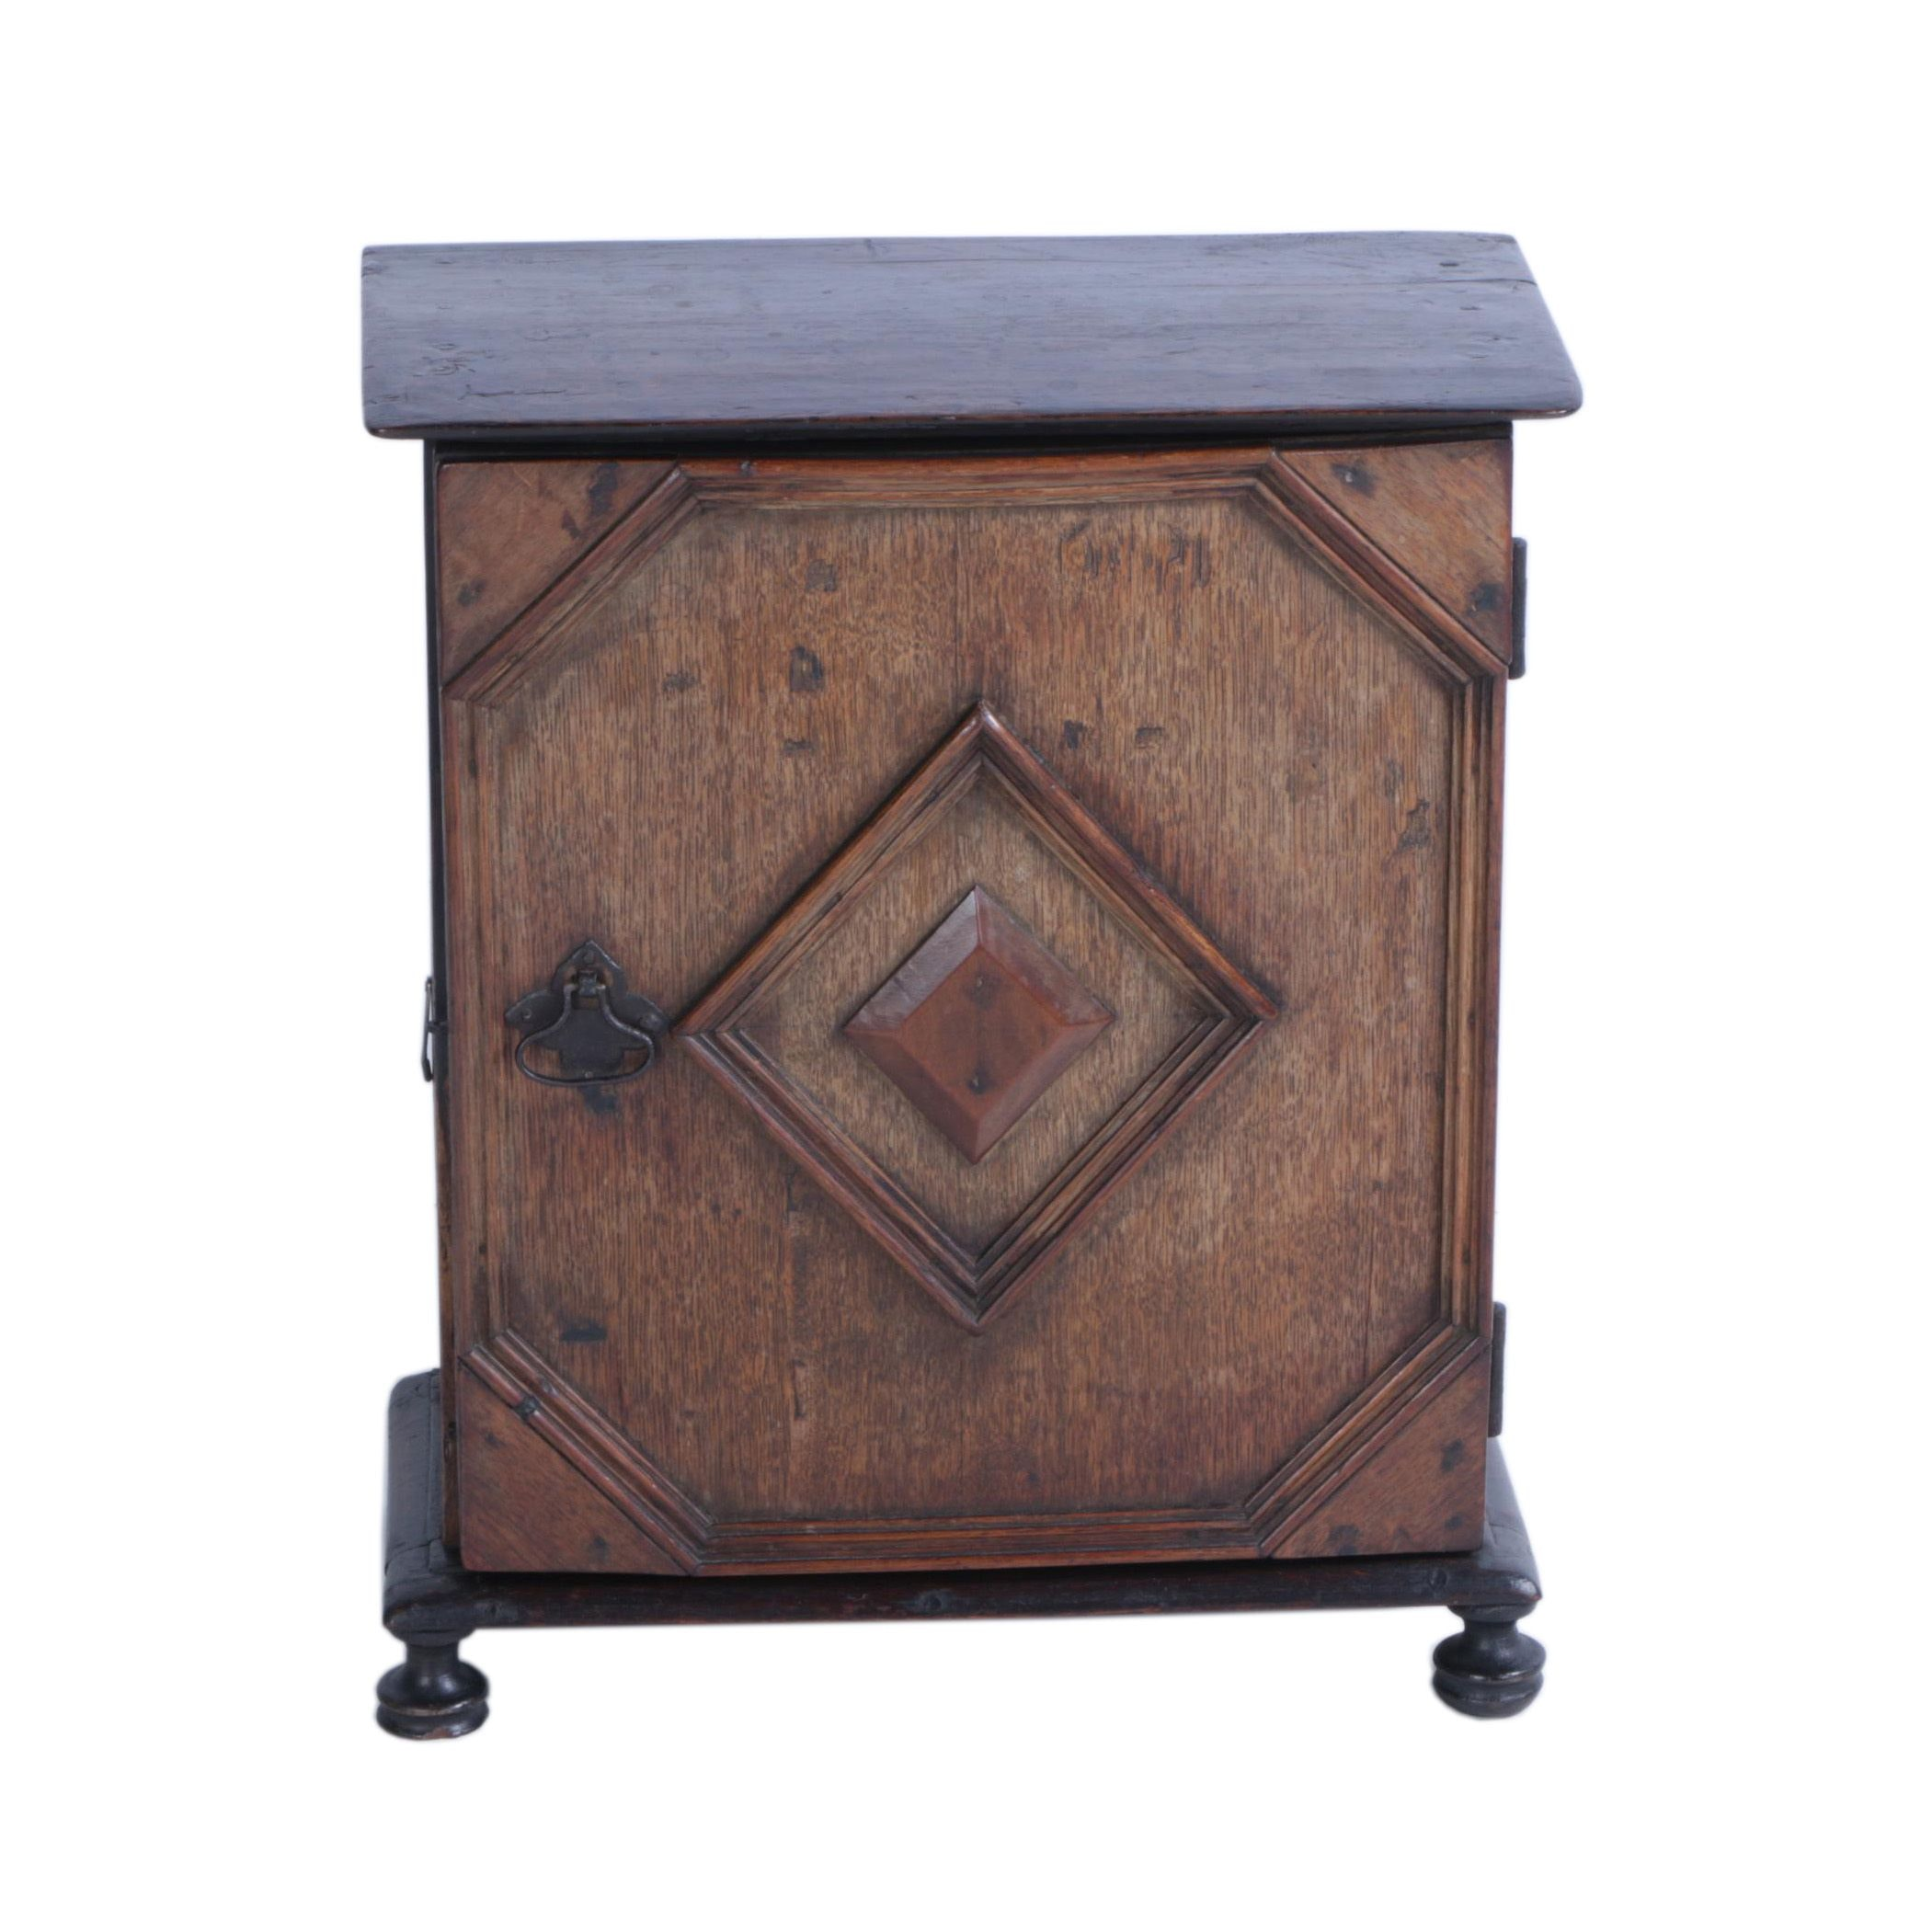 Antique William & Mary Style Oak Spice Chest, Circa 1700